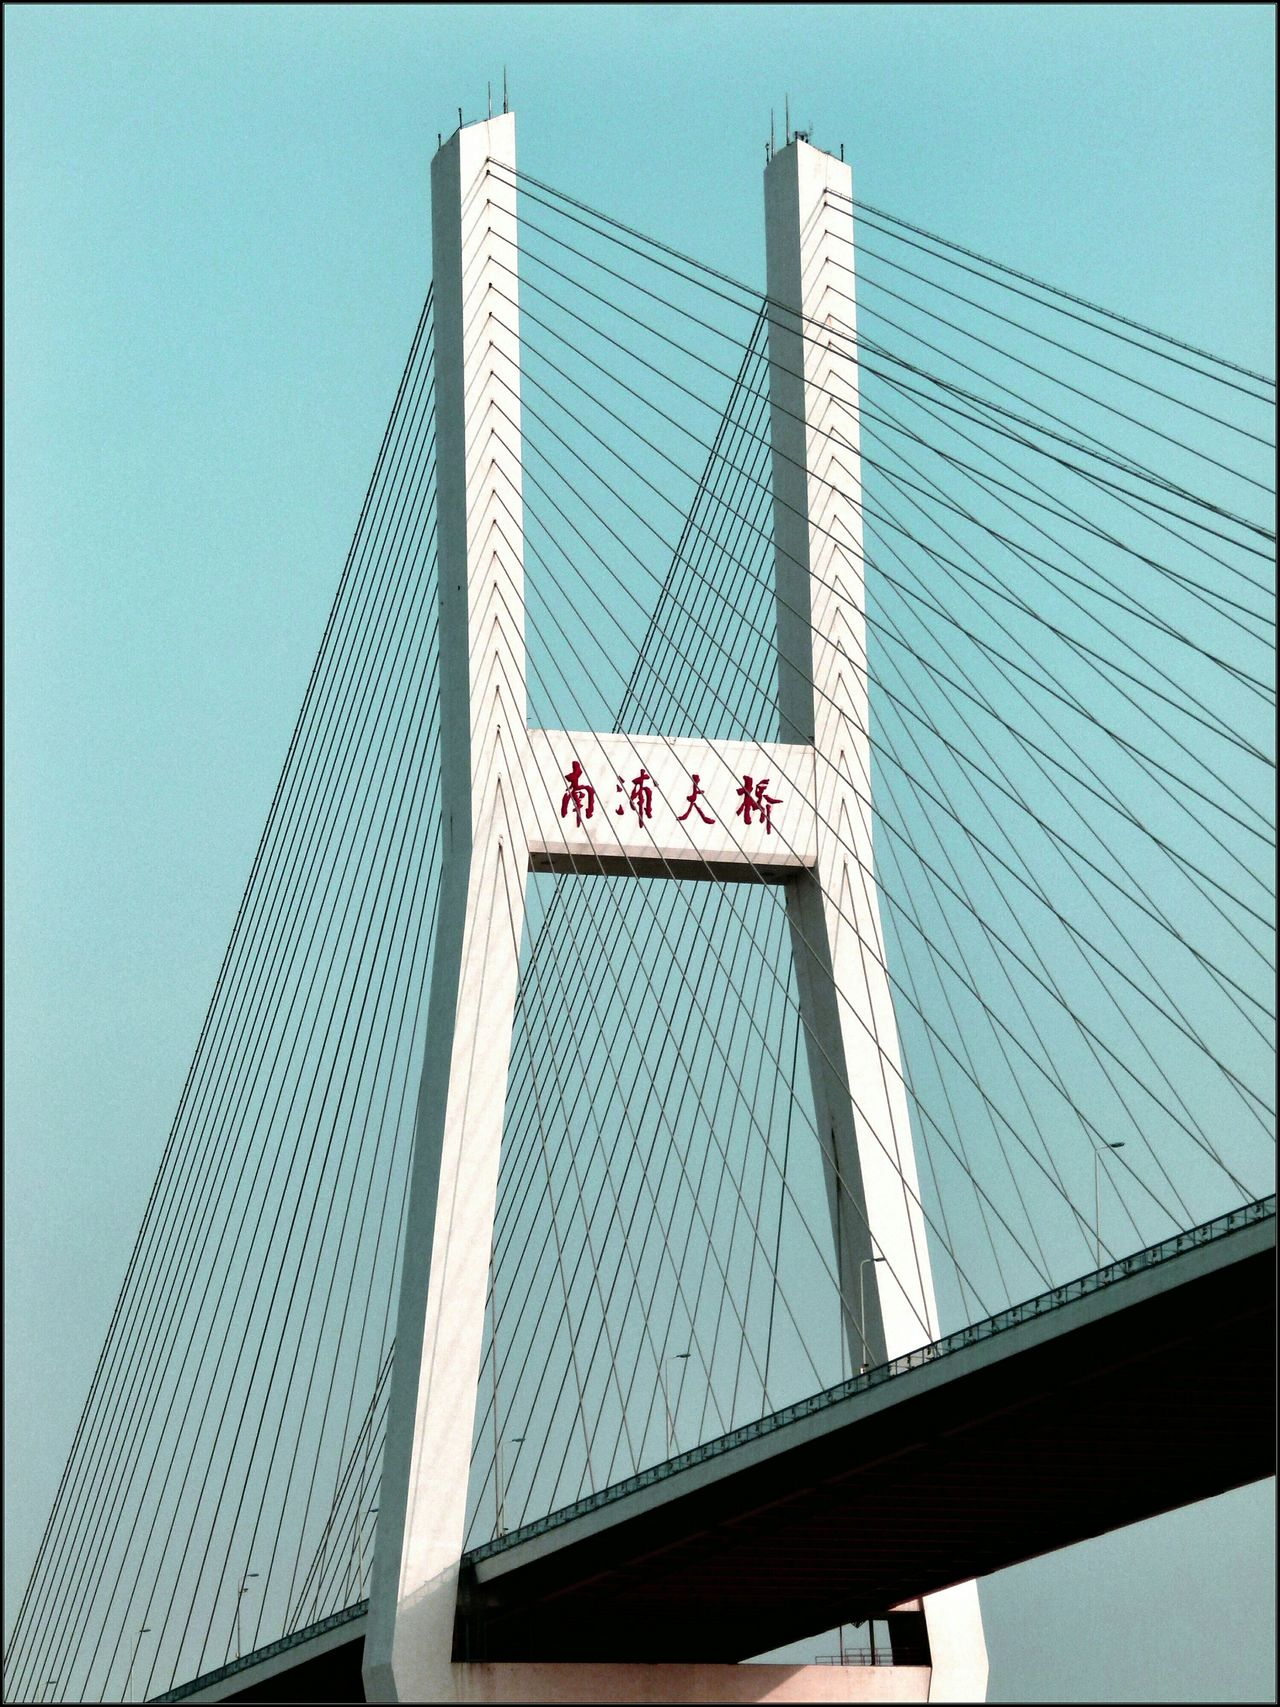 Beautiful stock photos of shanghai, Architecture, Auto Post Production Filter, Bridge - Man Made Structure, Built Structure